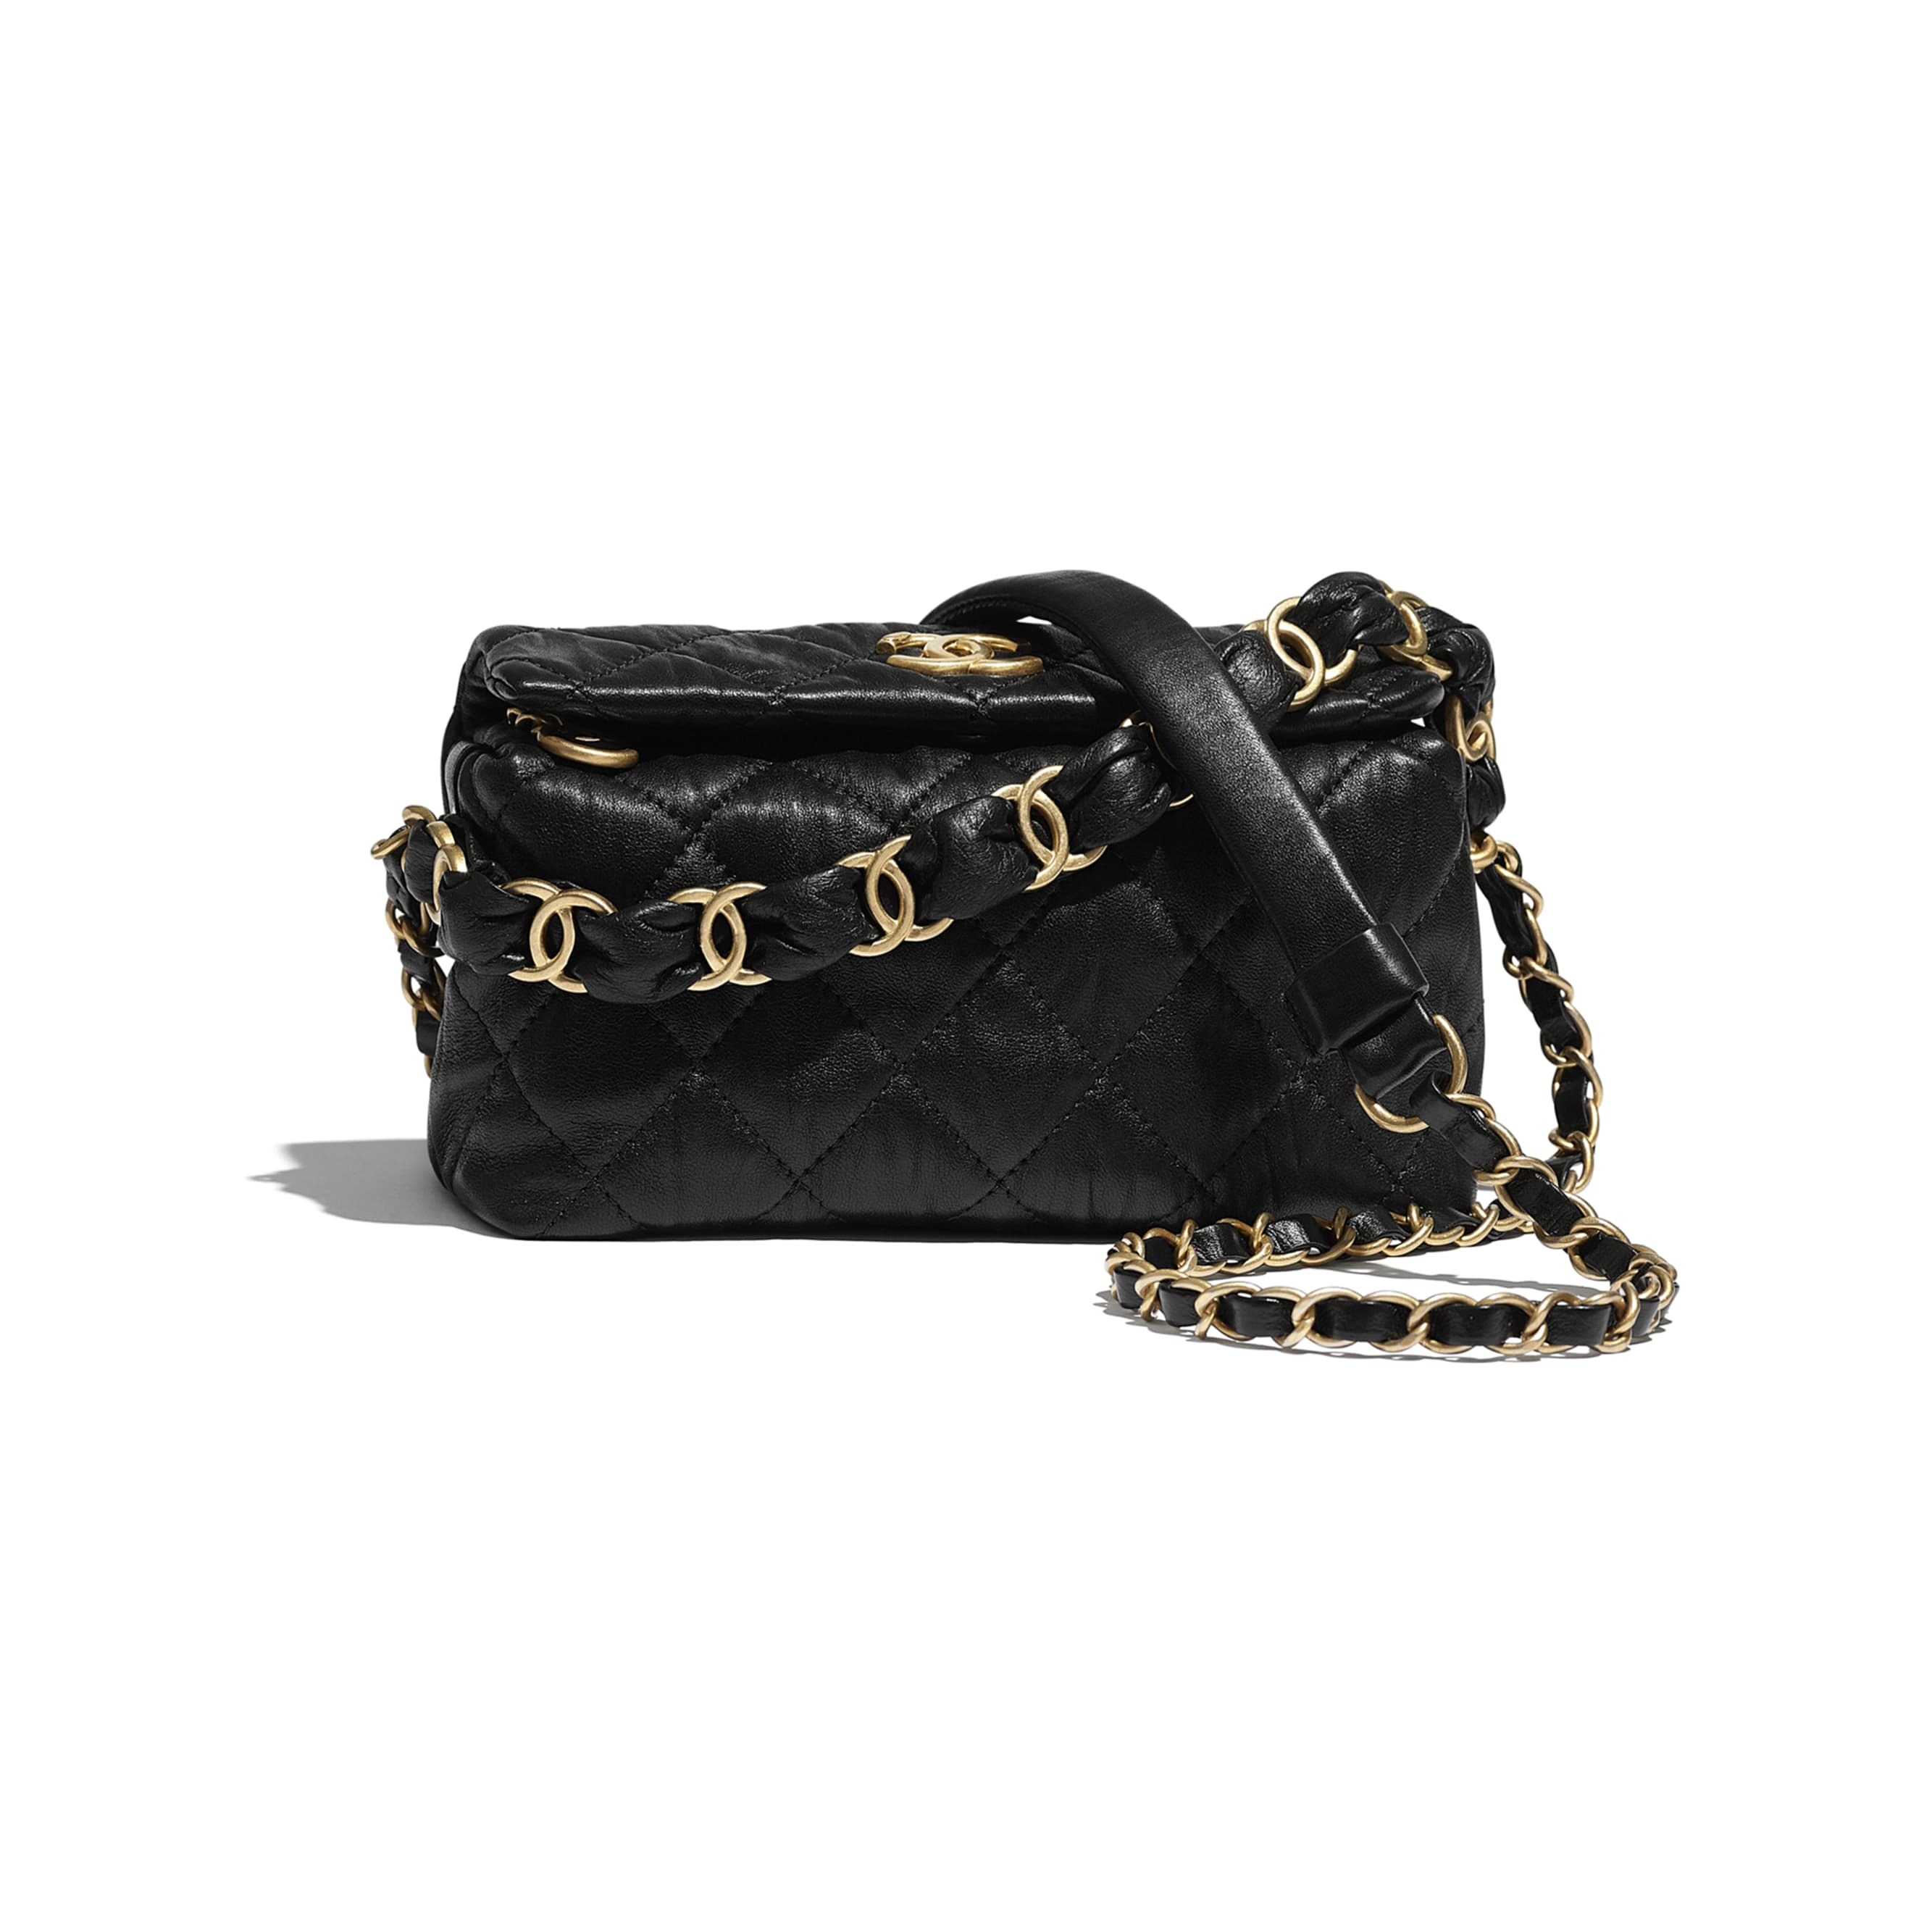 Small Hobo Bag - Black - Crumpled Lambskin & Gold-Tone Metal - CHANEL - Default view - see standard sized version